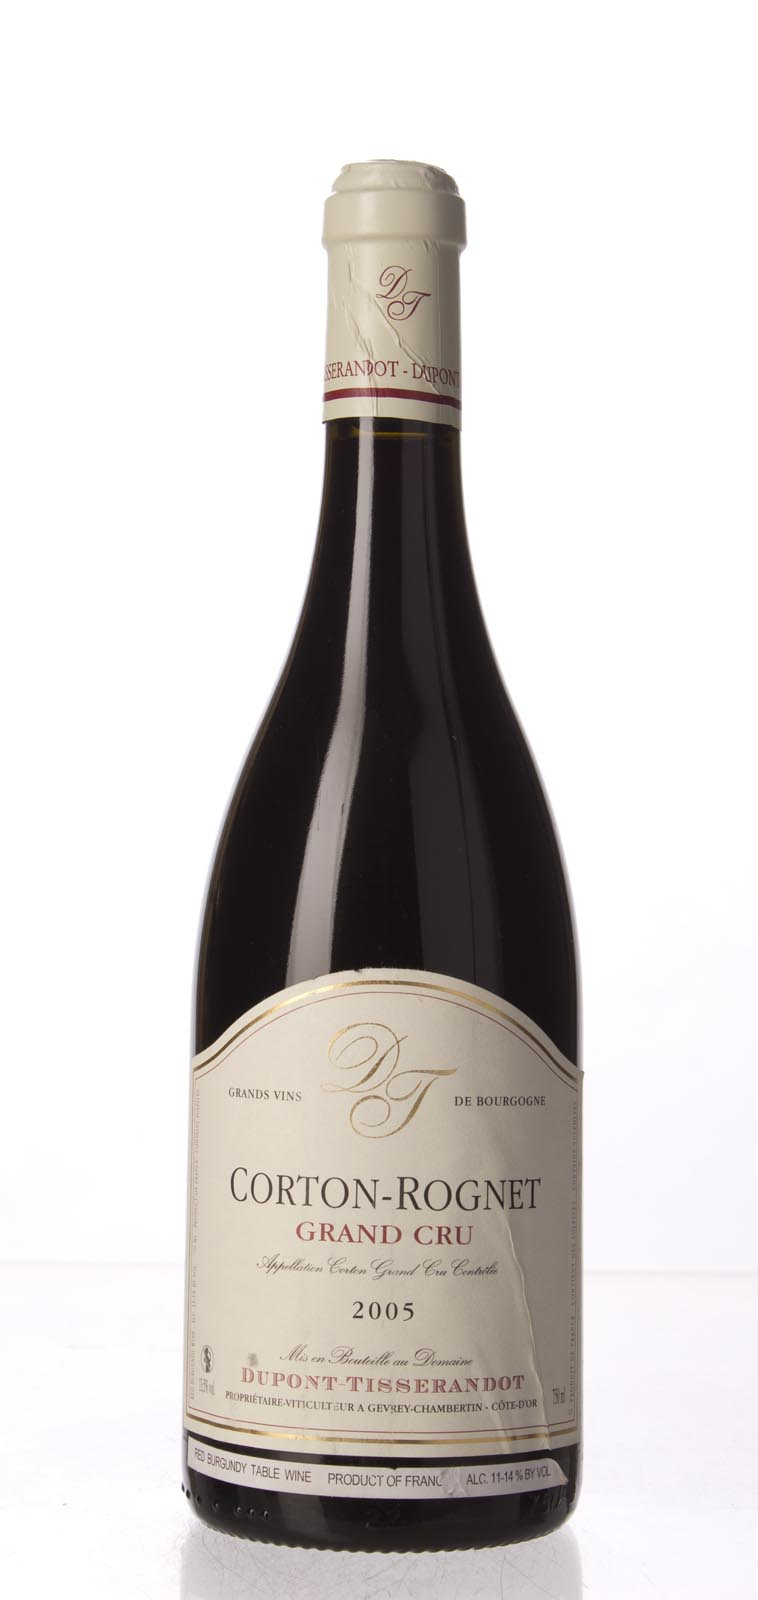 Dupont Tisserandot Corton Rognets 2005, 750mL () from The BPW - Merchants of rare and fine wines.